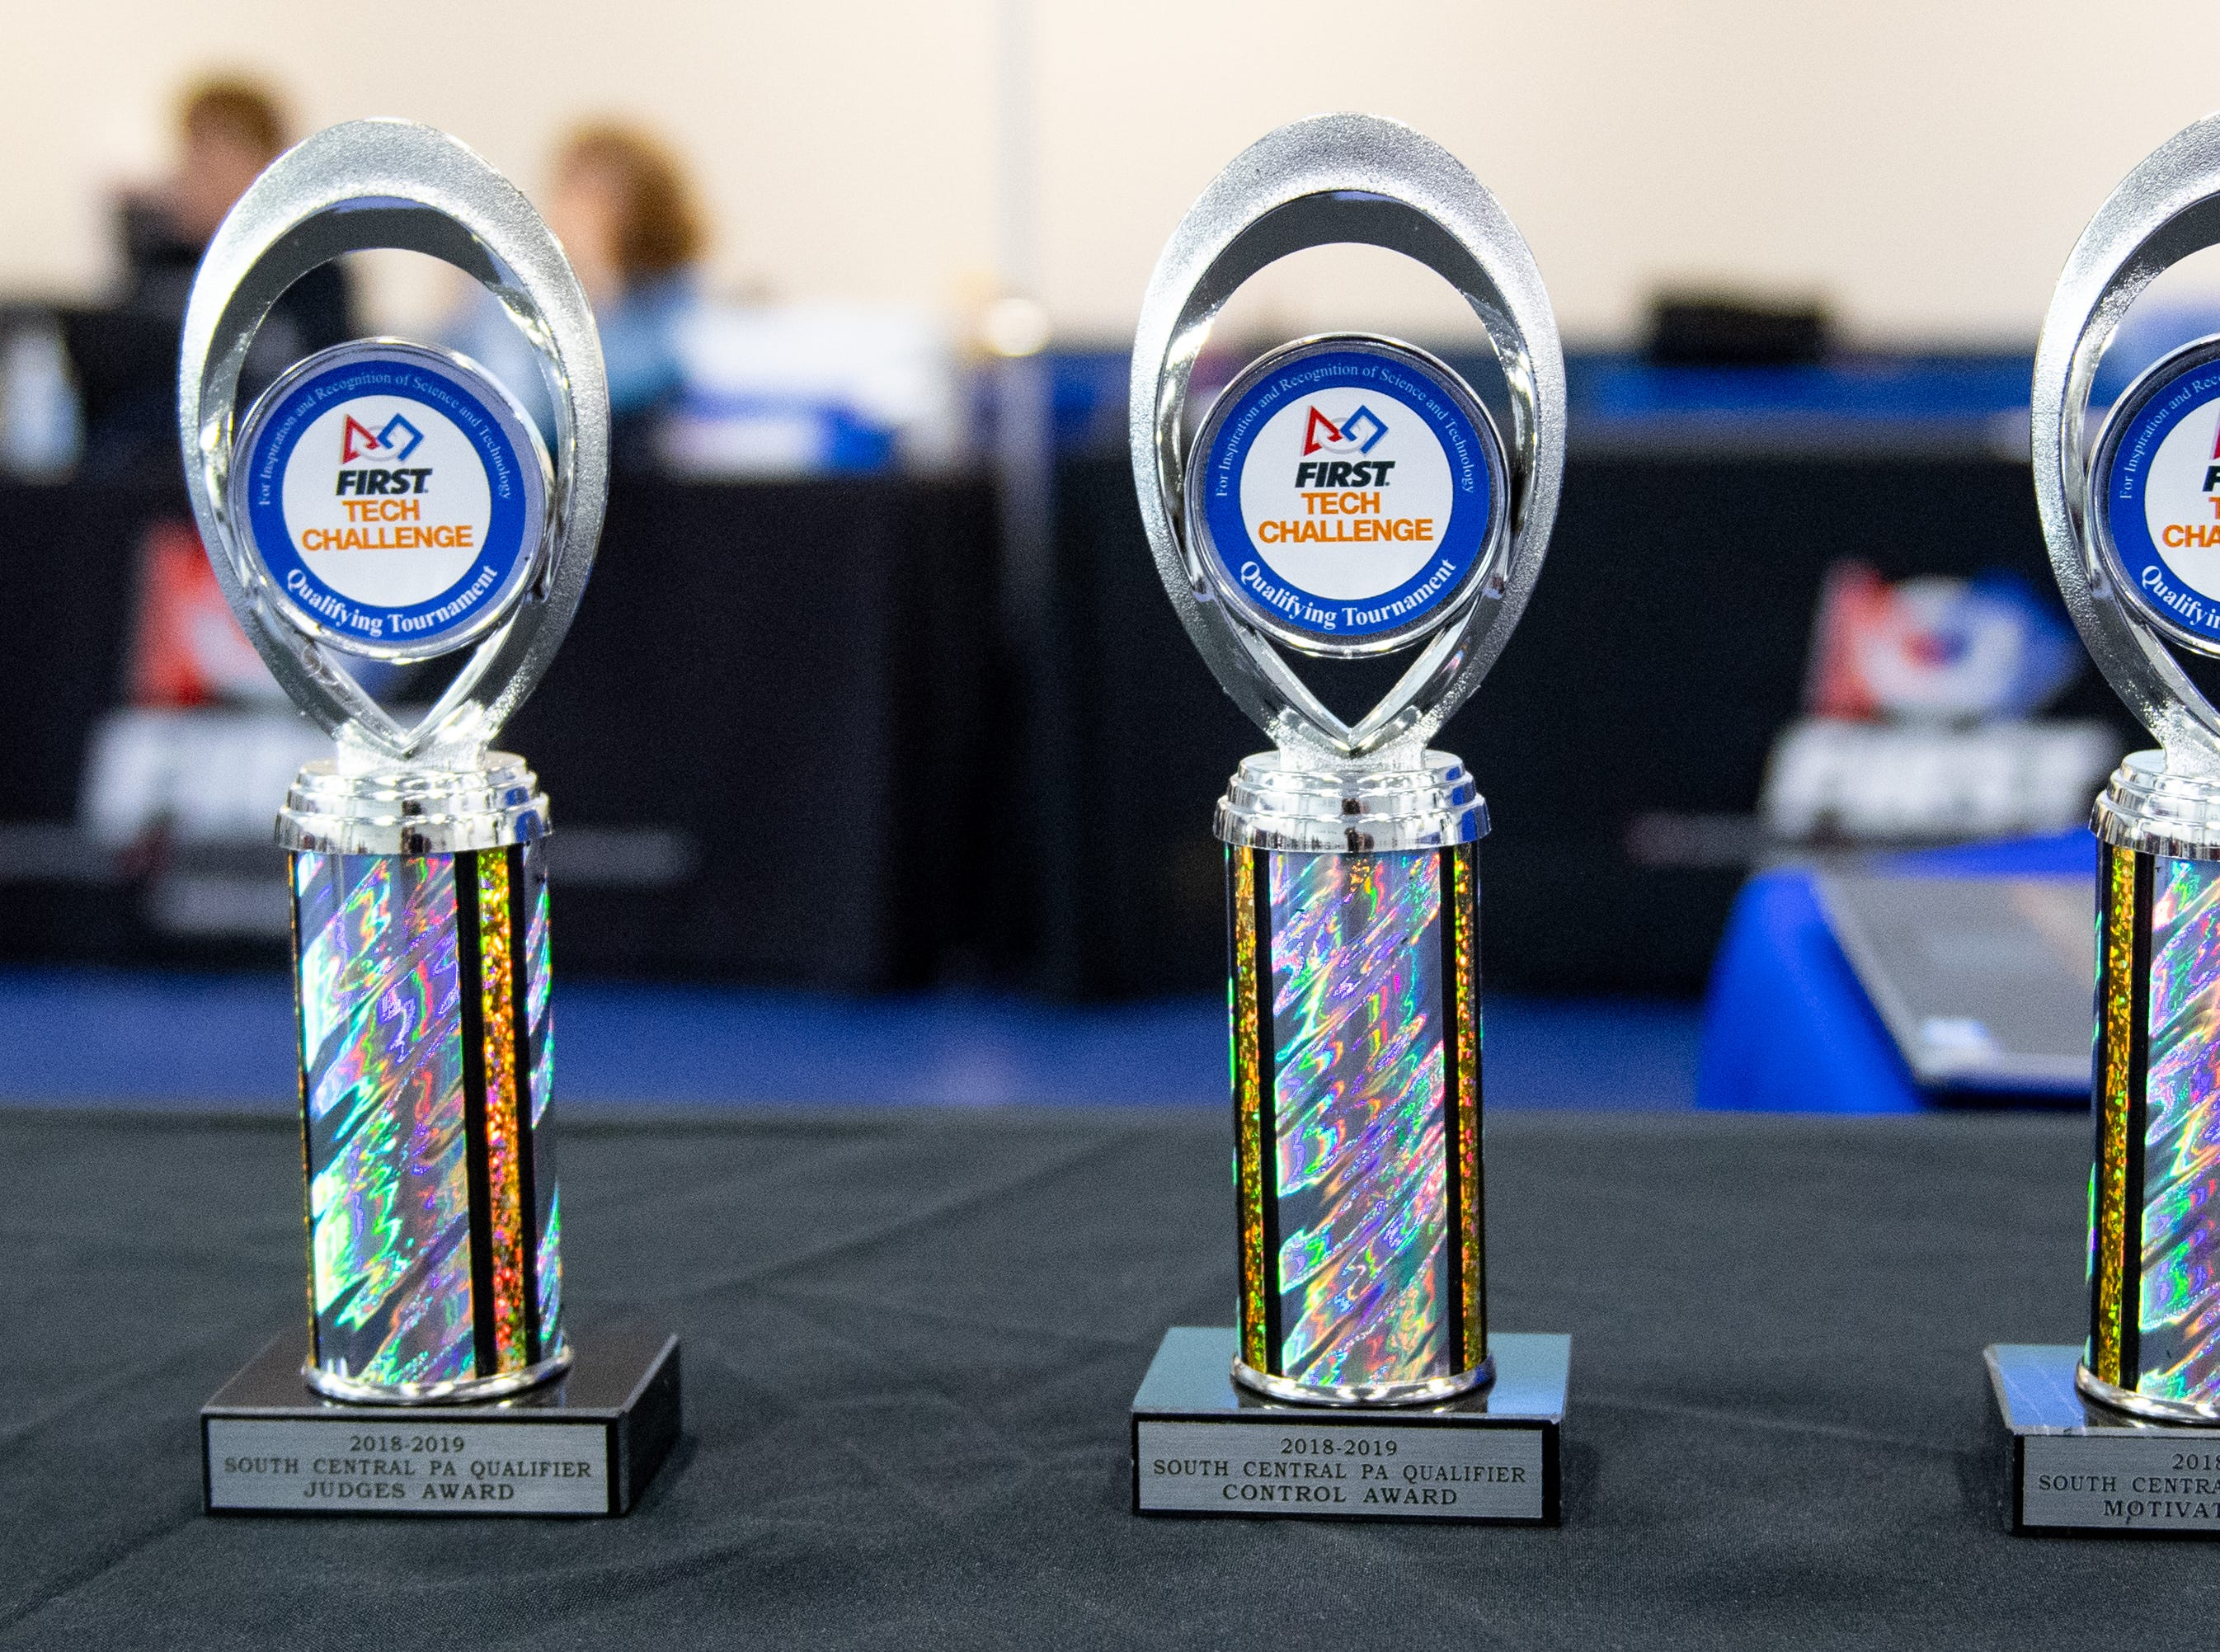 The five winning teams of the First Tech Challenge robotics competition Qualifiers receive trophies and advance to the Pennsylvania State Championship, held in March 2019.